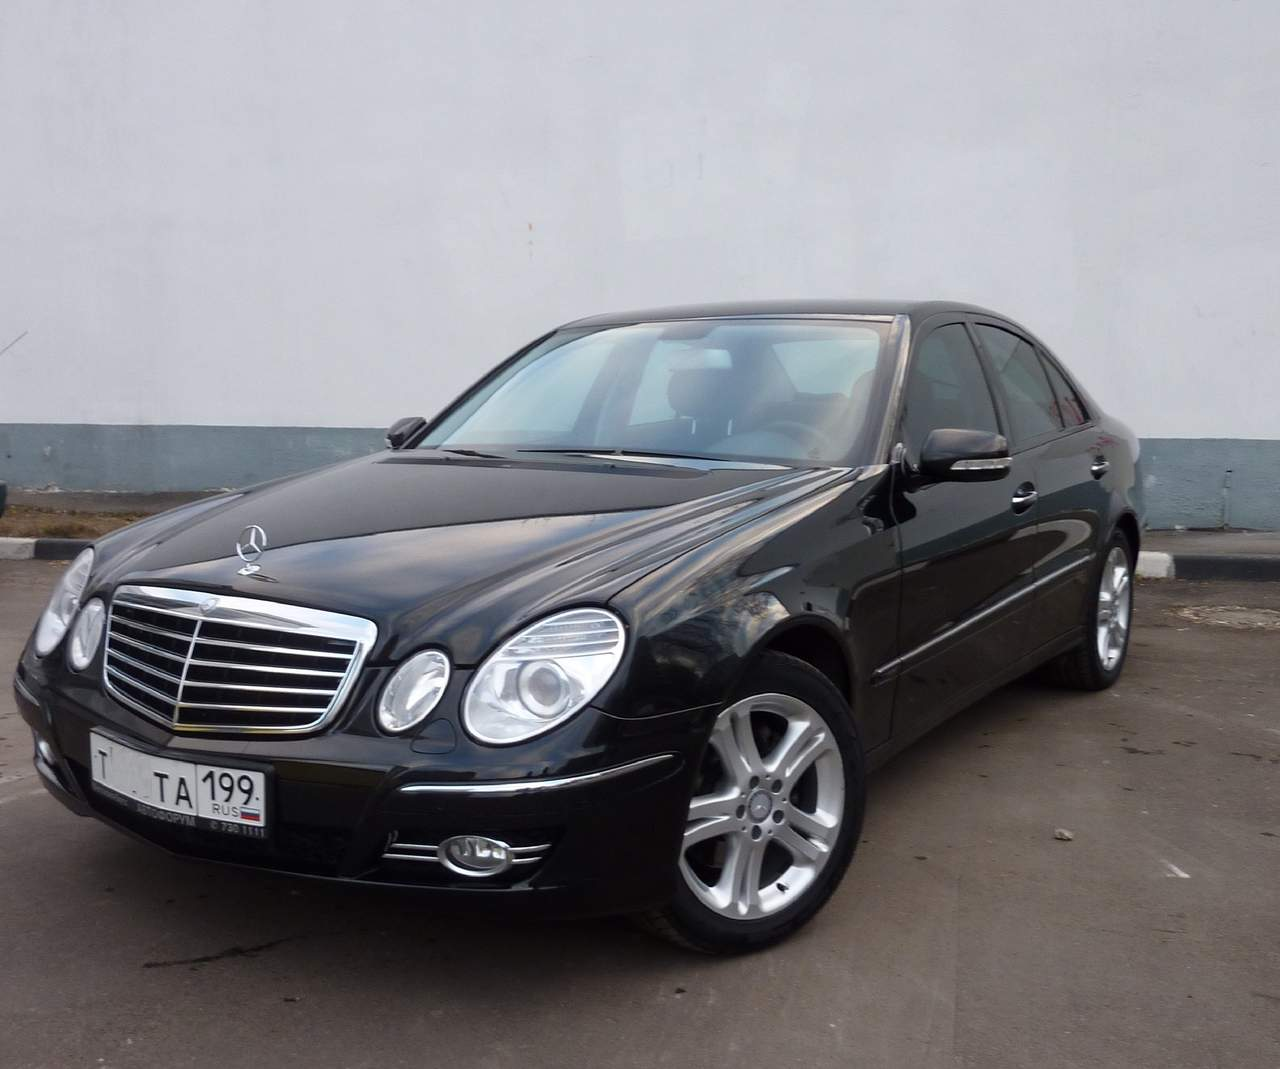 2008 mercedes benz e class photos gasoline automatic for sale. Black Bedroom Furniture Sets. Home Design Ideas